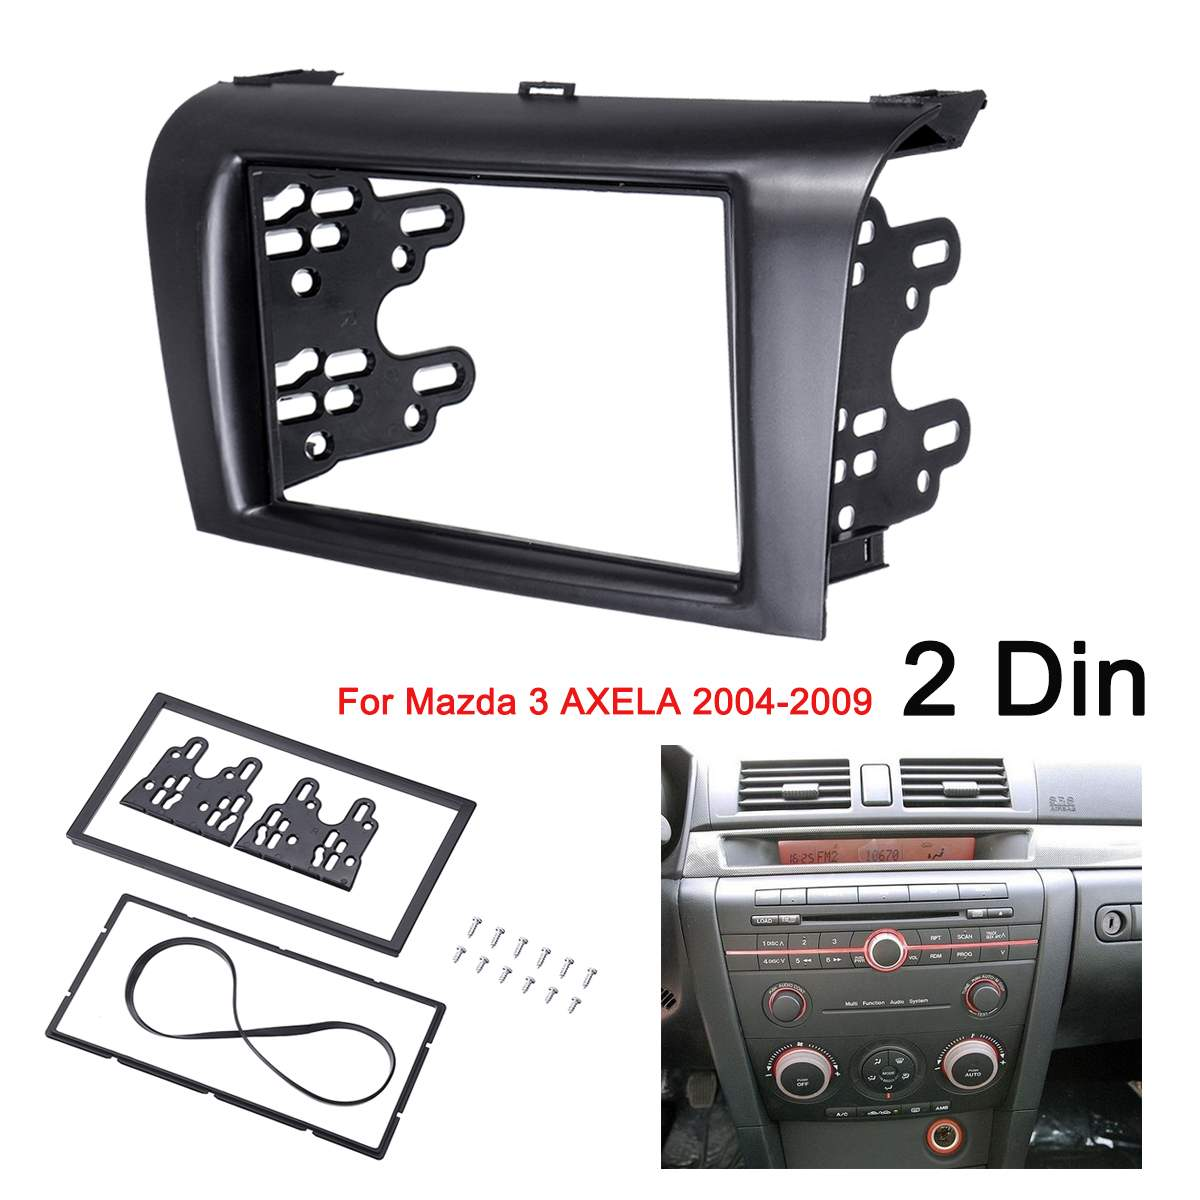 2DIN Car Stereo Radio DVD Fascia Fascias Dash Panel Plate Trim Kit Frame Cover For <font><b>Mazda</b></font> <font><b>3</b></font> AXELA 2004 2005 <font><b>2006</b></font> 2007 2008 2009 image